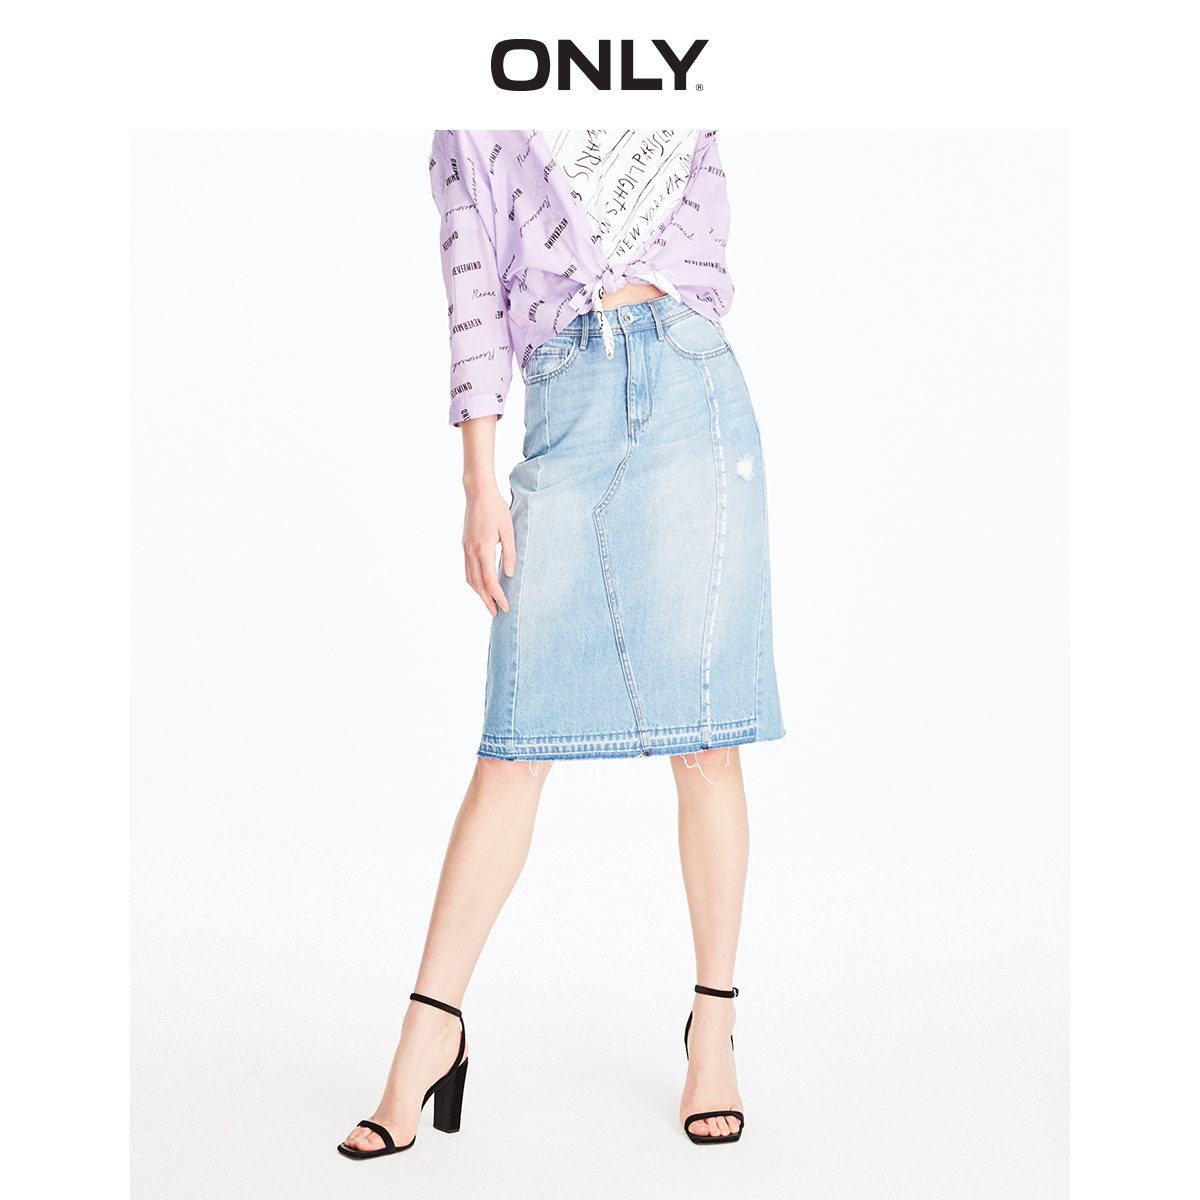 ONLY Women's 100% Cotton Letter Print High-rise Denim Skirt | 119237513